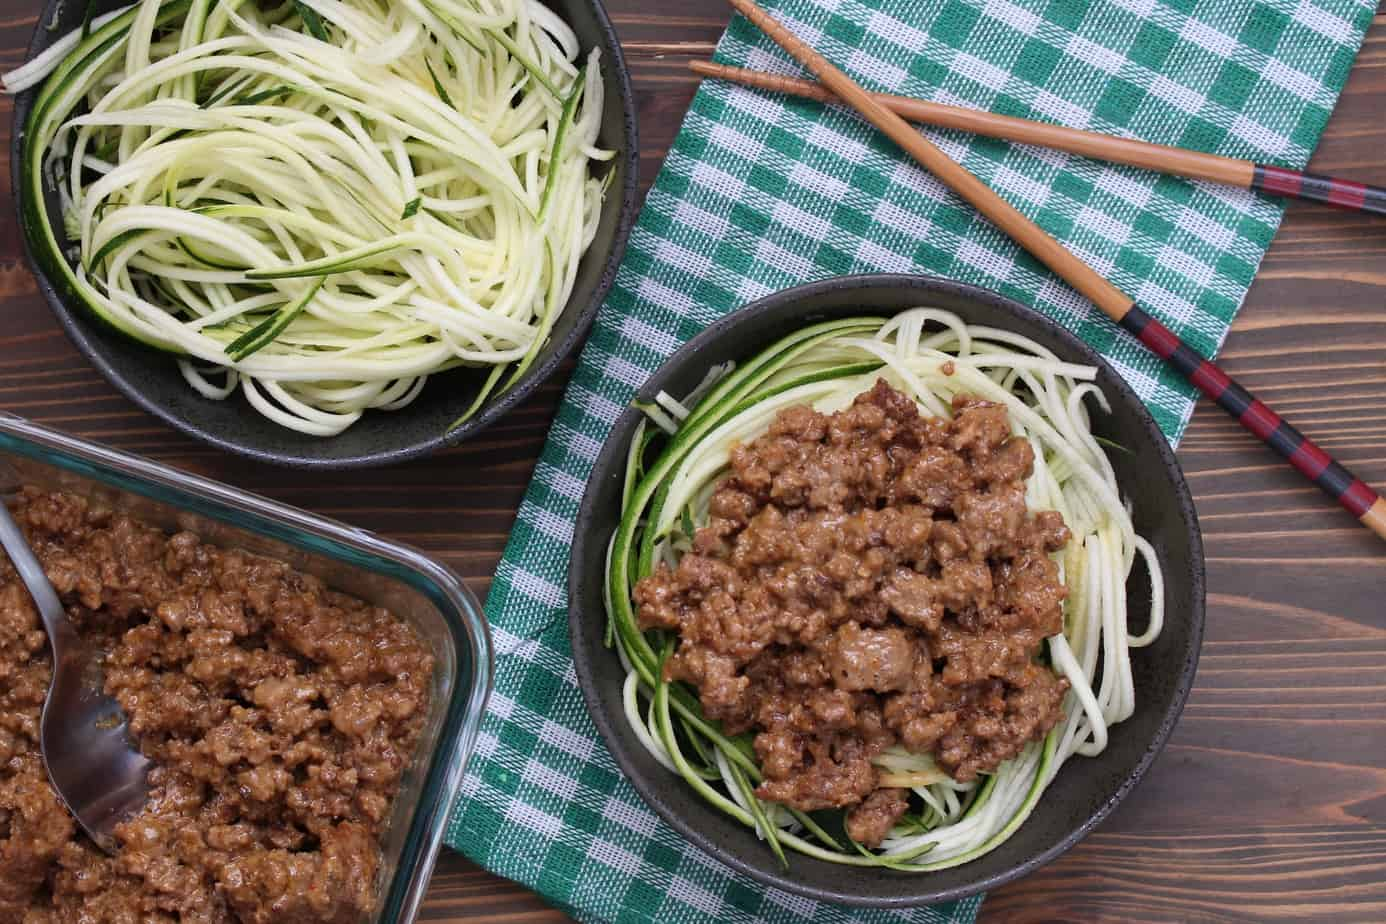 Thai Coconut Beef & Zucchini Noodles | Frugal Nutrition